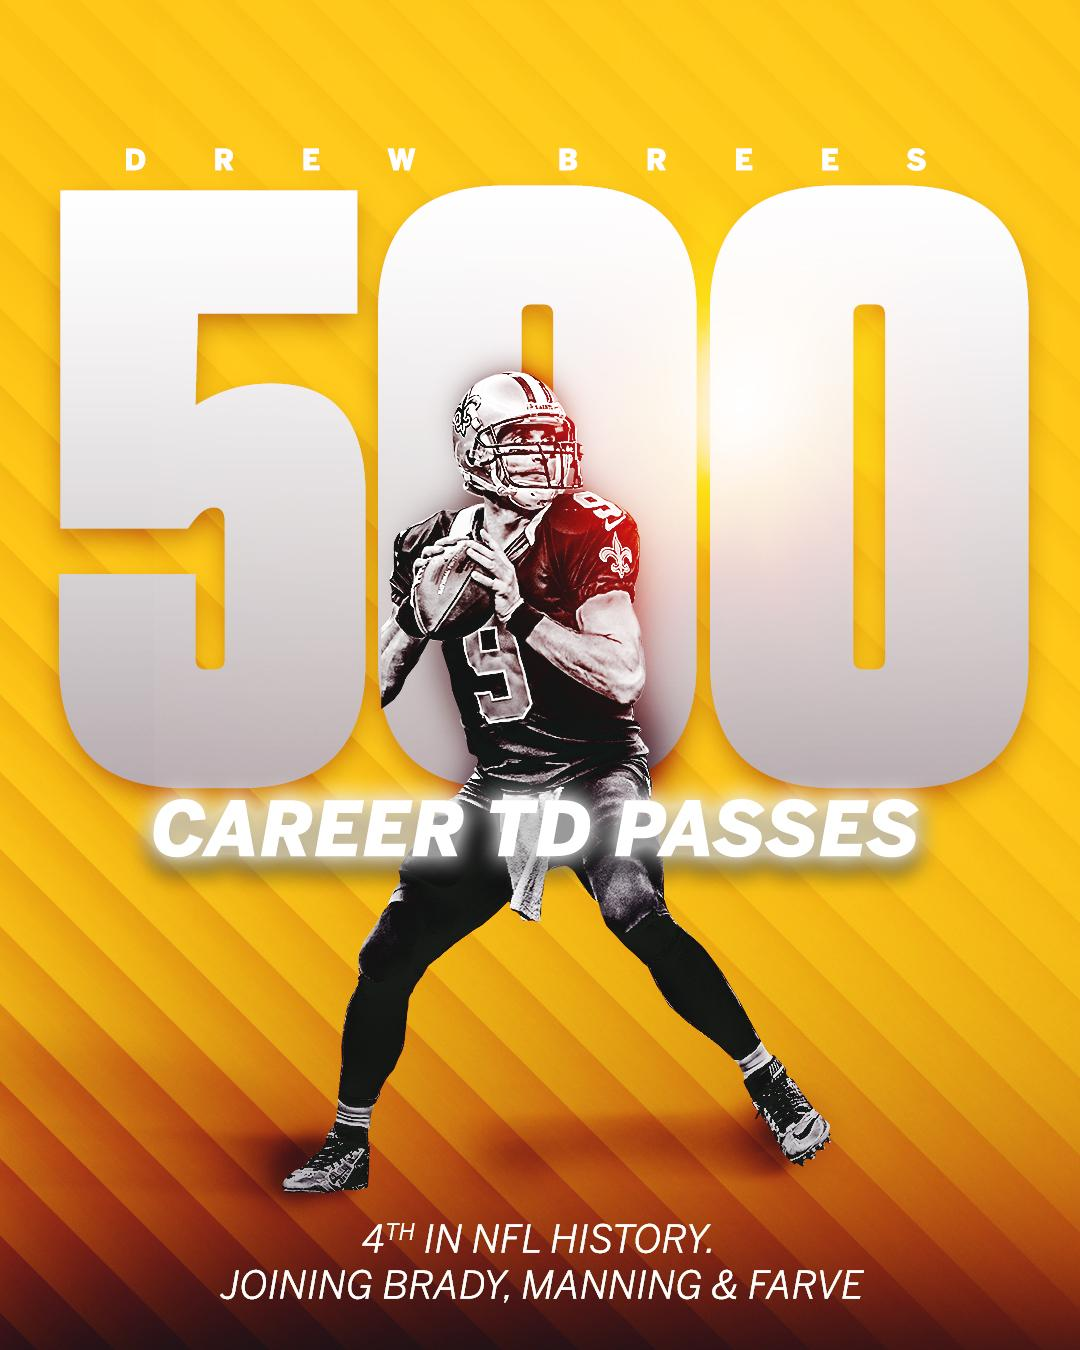 Another milestone for Drew Brees. https://t.co/70MRMTJQV1